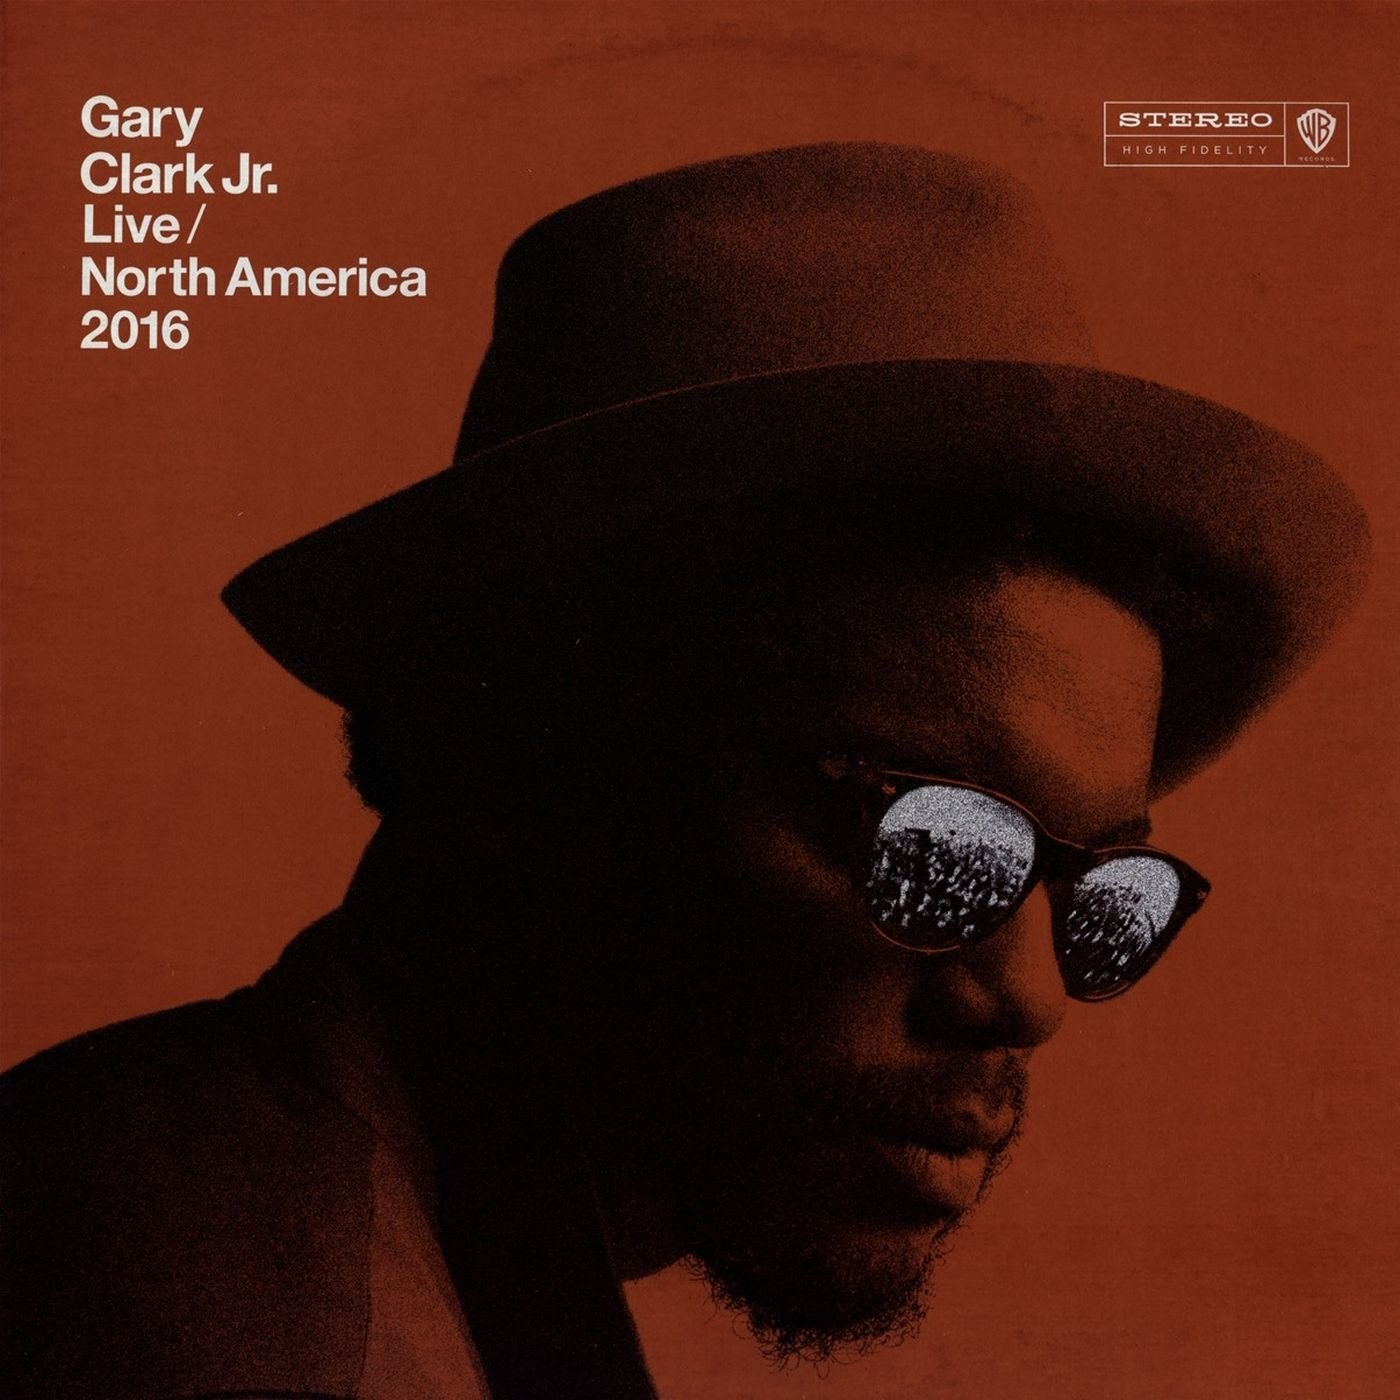 Vinilo : Gary Clark Jr. - Live North America 2016 (2 Disc)